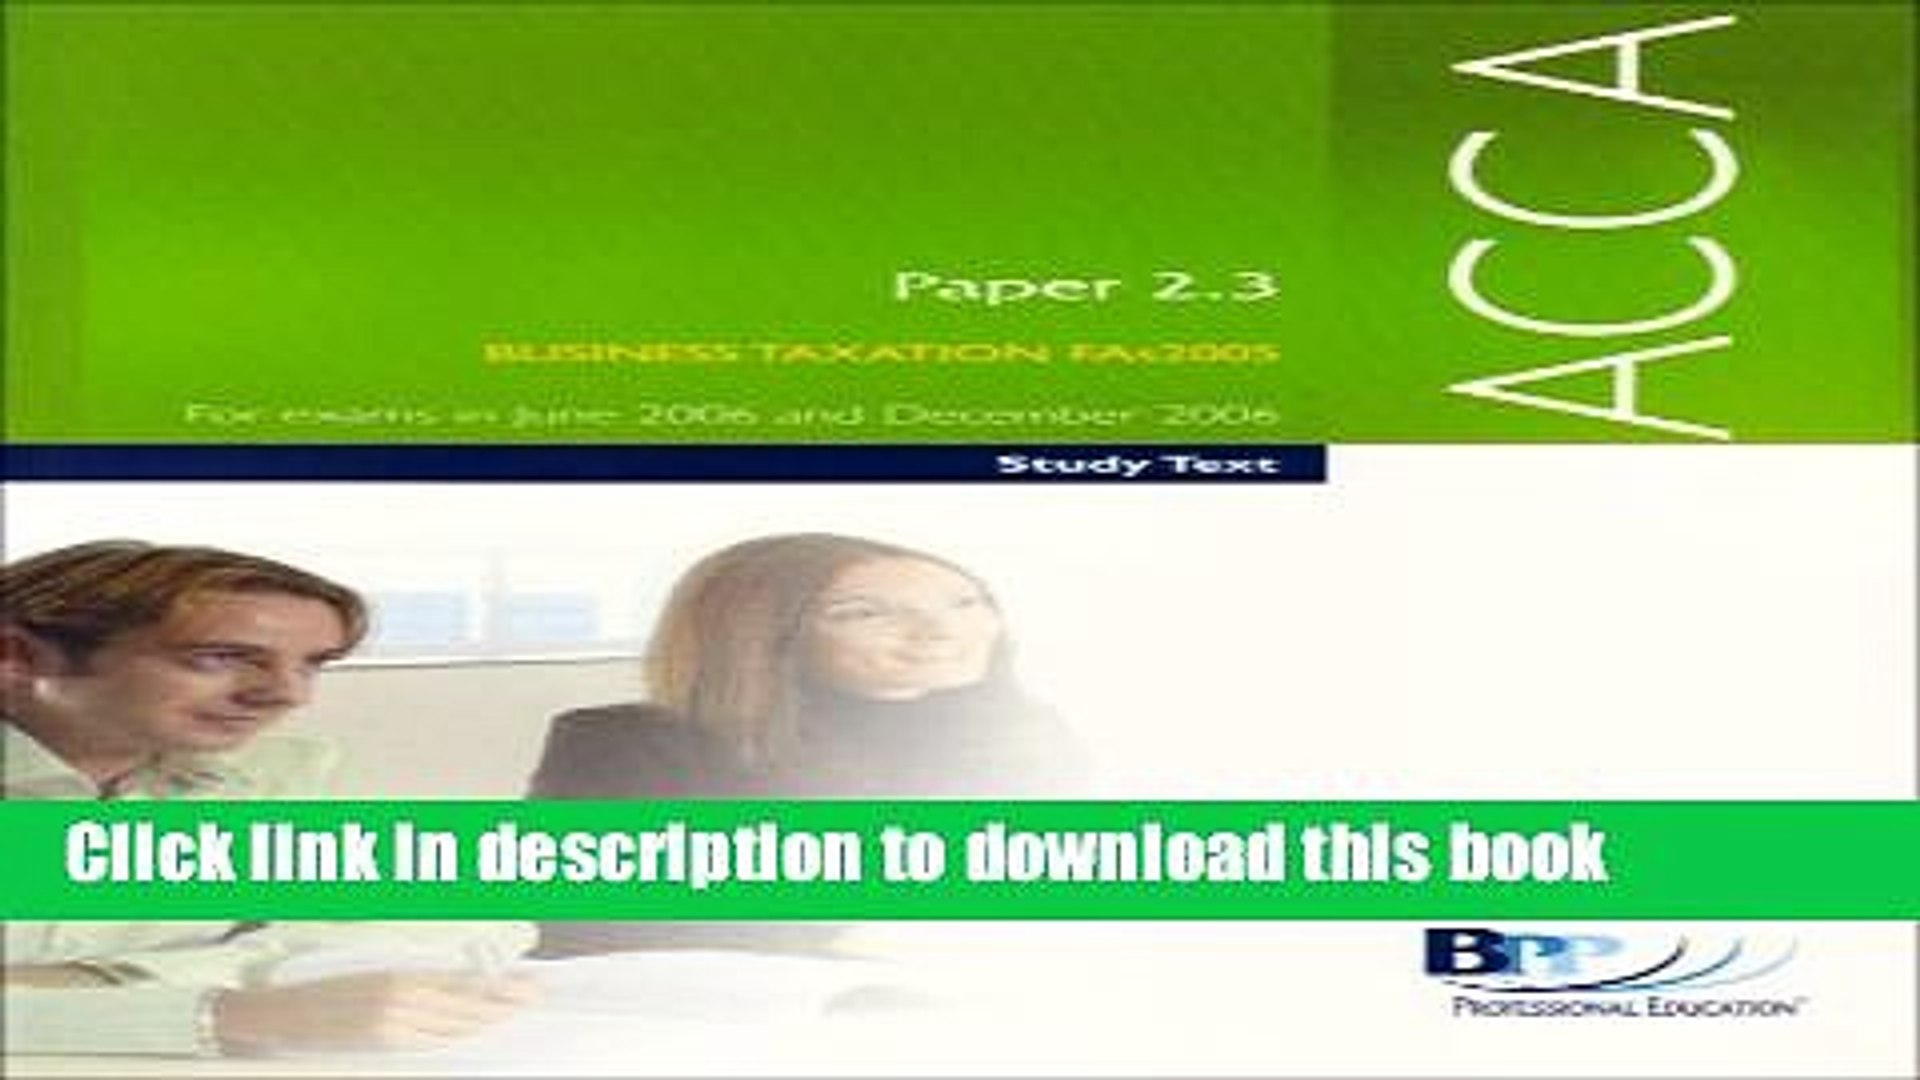 [Popular] ACCA Paper 2.3 Business Taxation FA 2005 2005: Study Text Hardcover Online